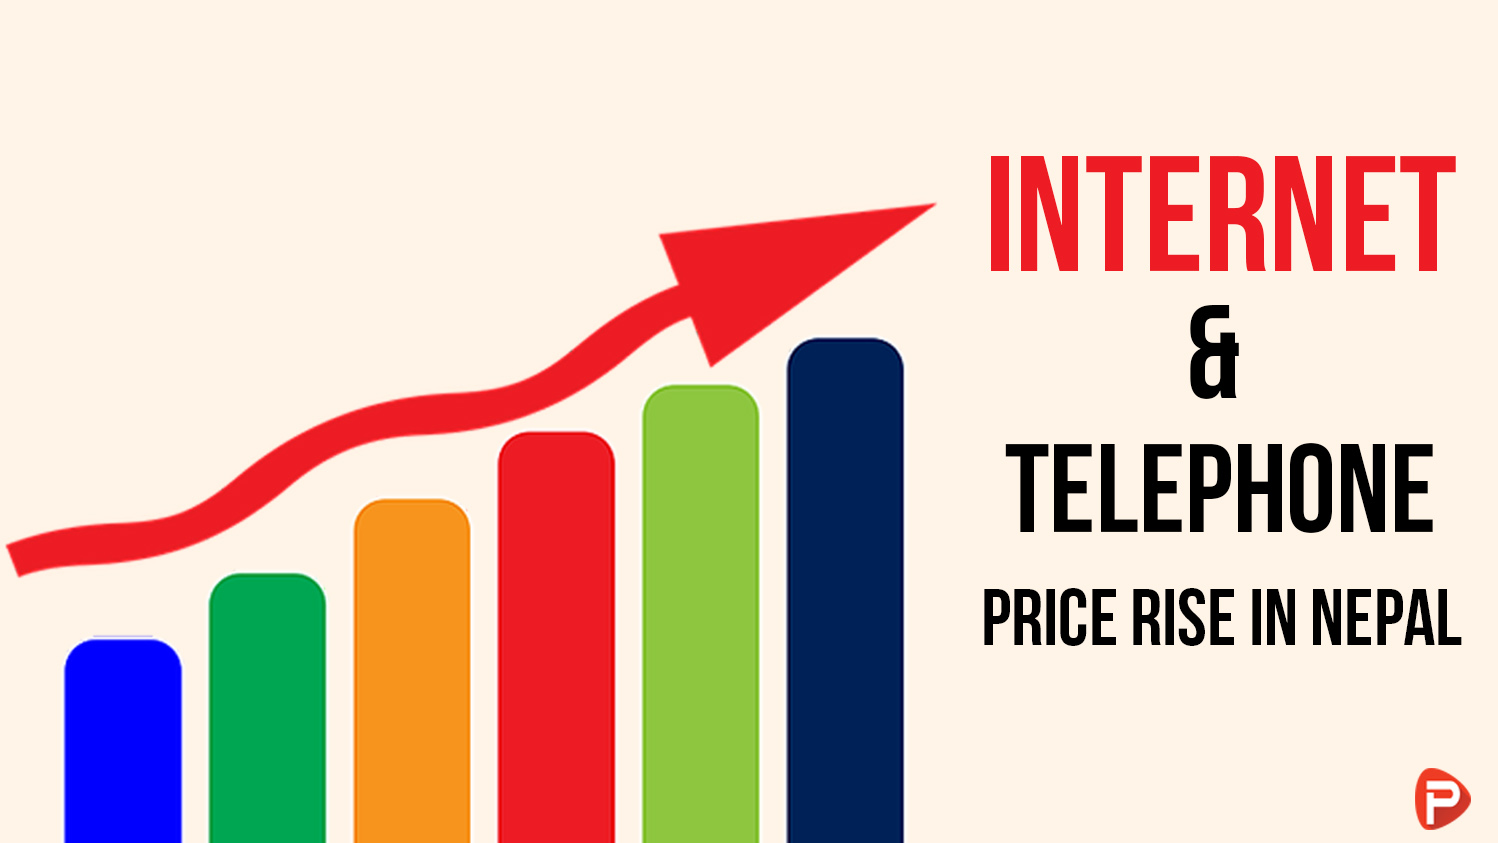 Internet price increase in Nepal